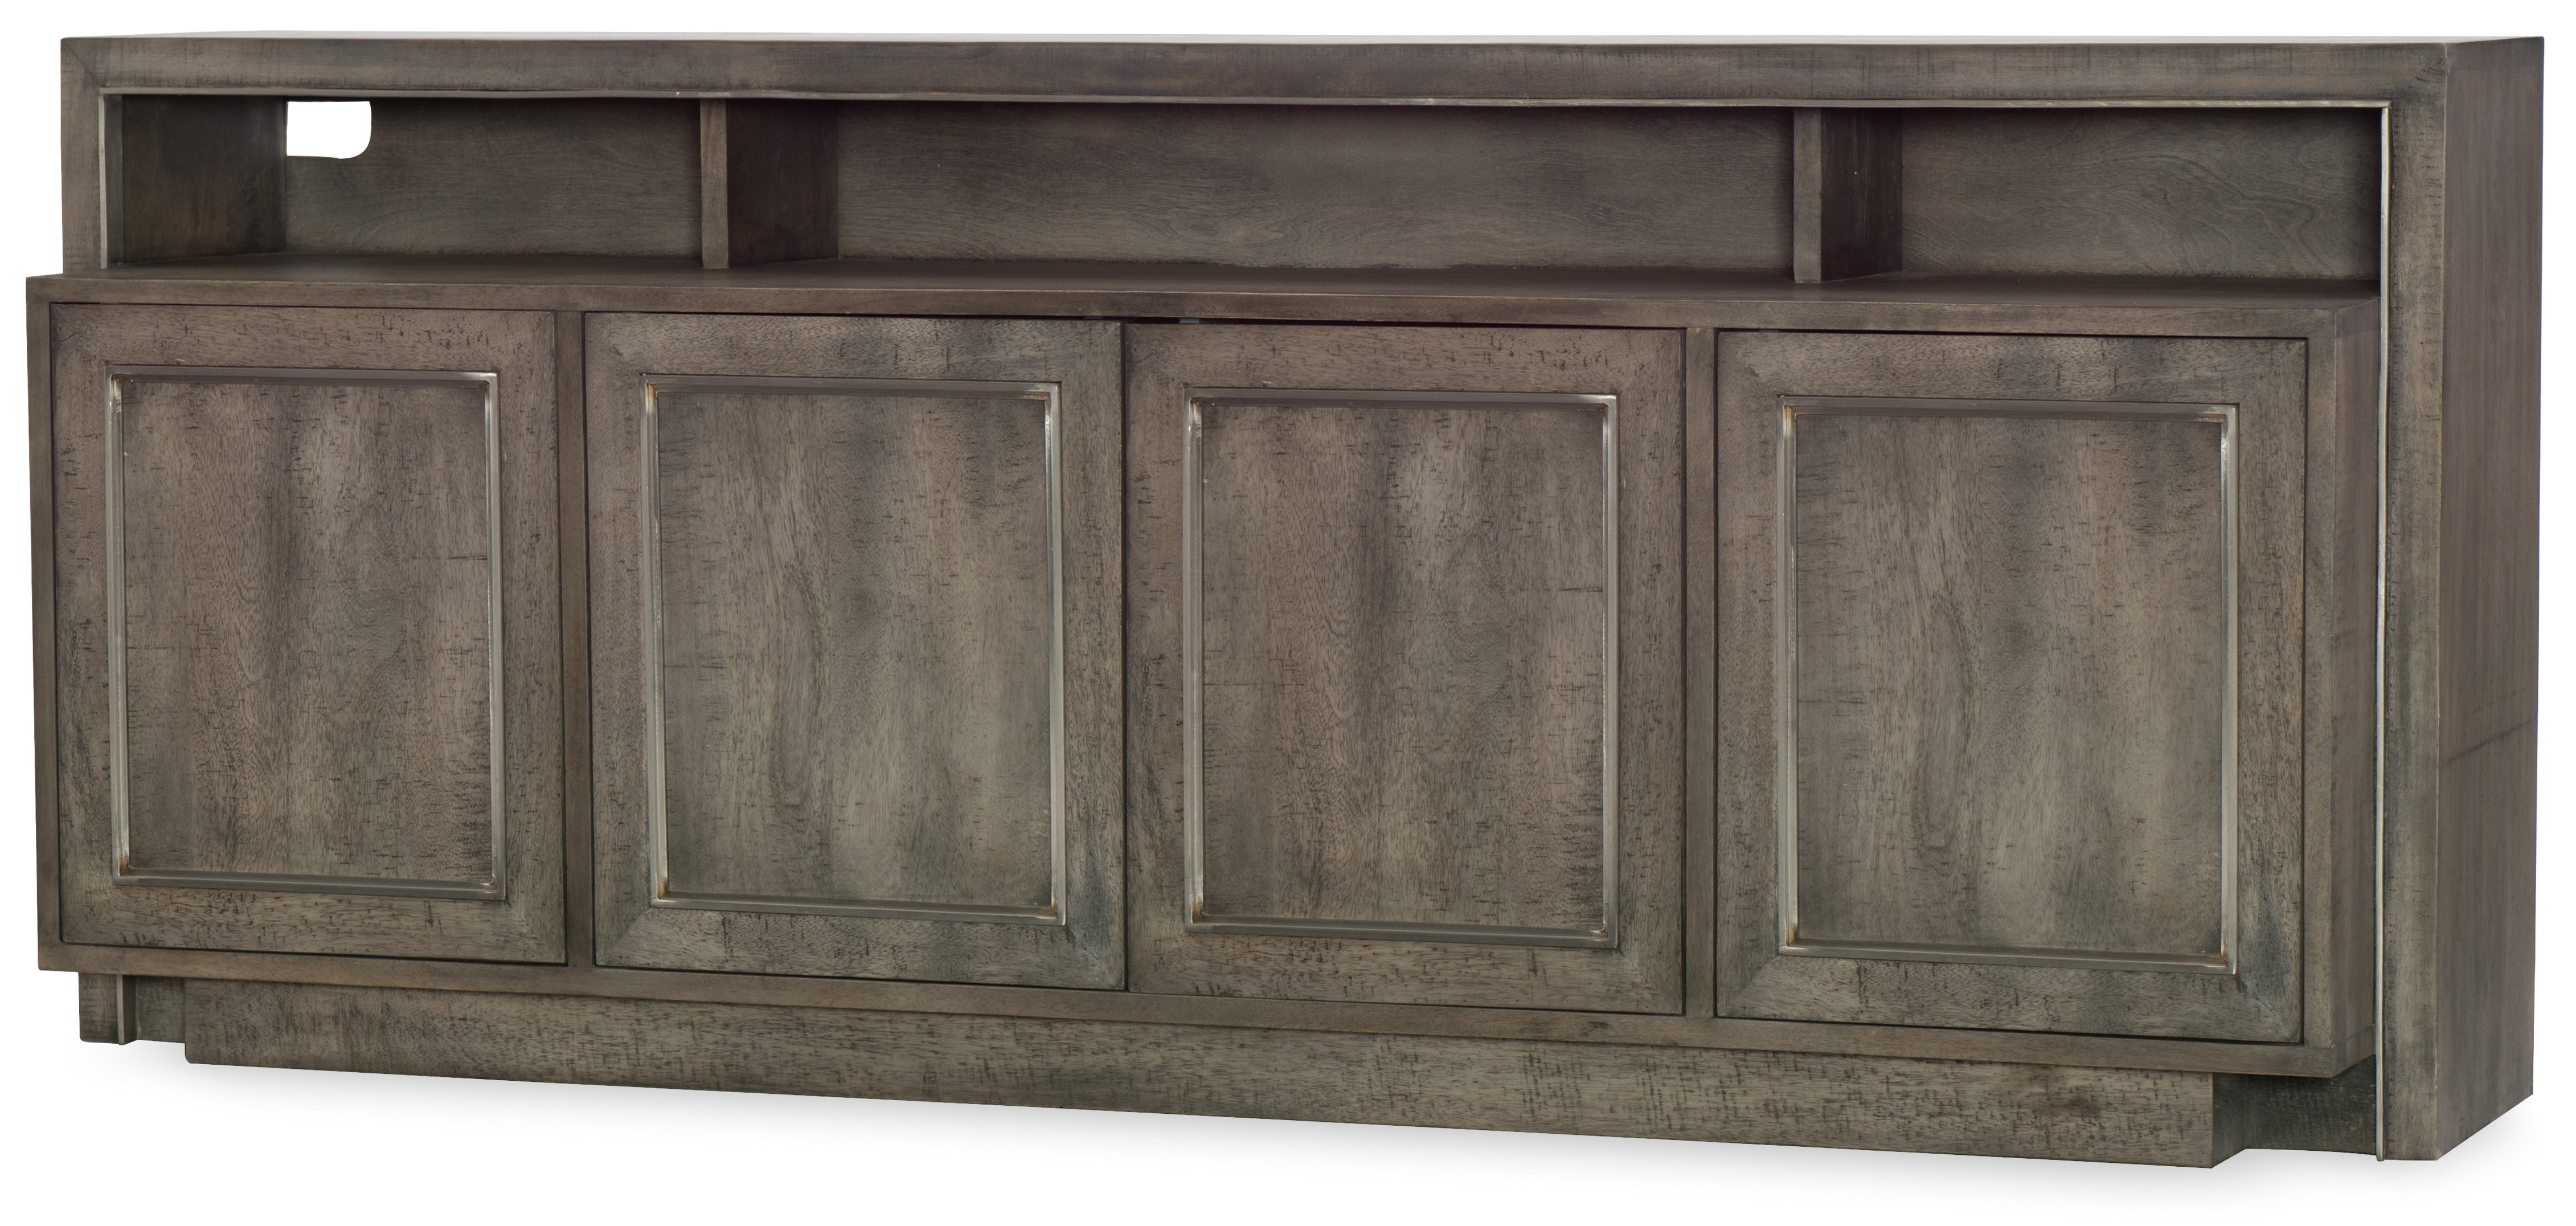 70 Inches And Larger Tv Stands | Joss & Main With Walton 72 Inch Tv Stands (View 4 of 20)